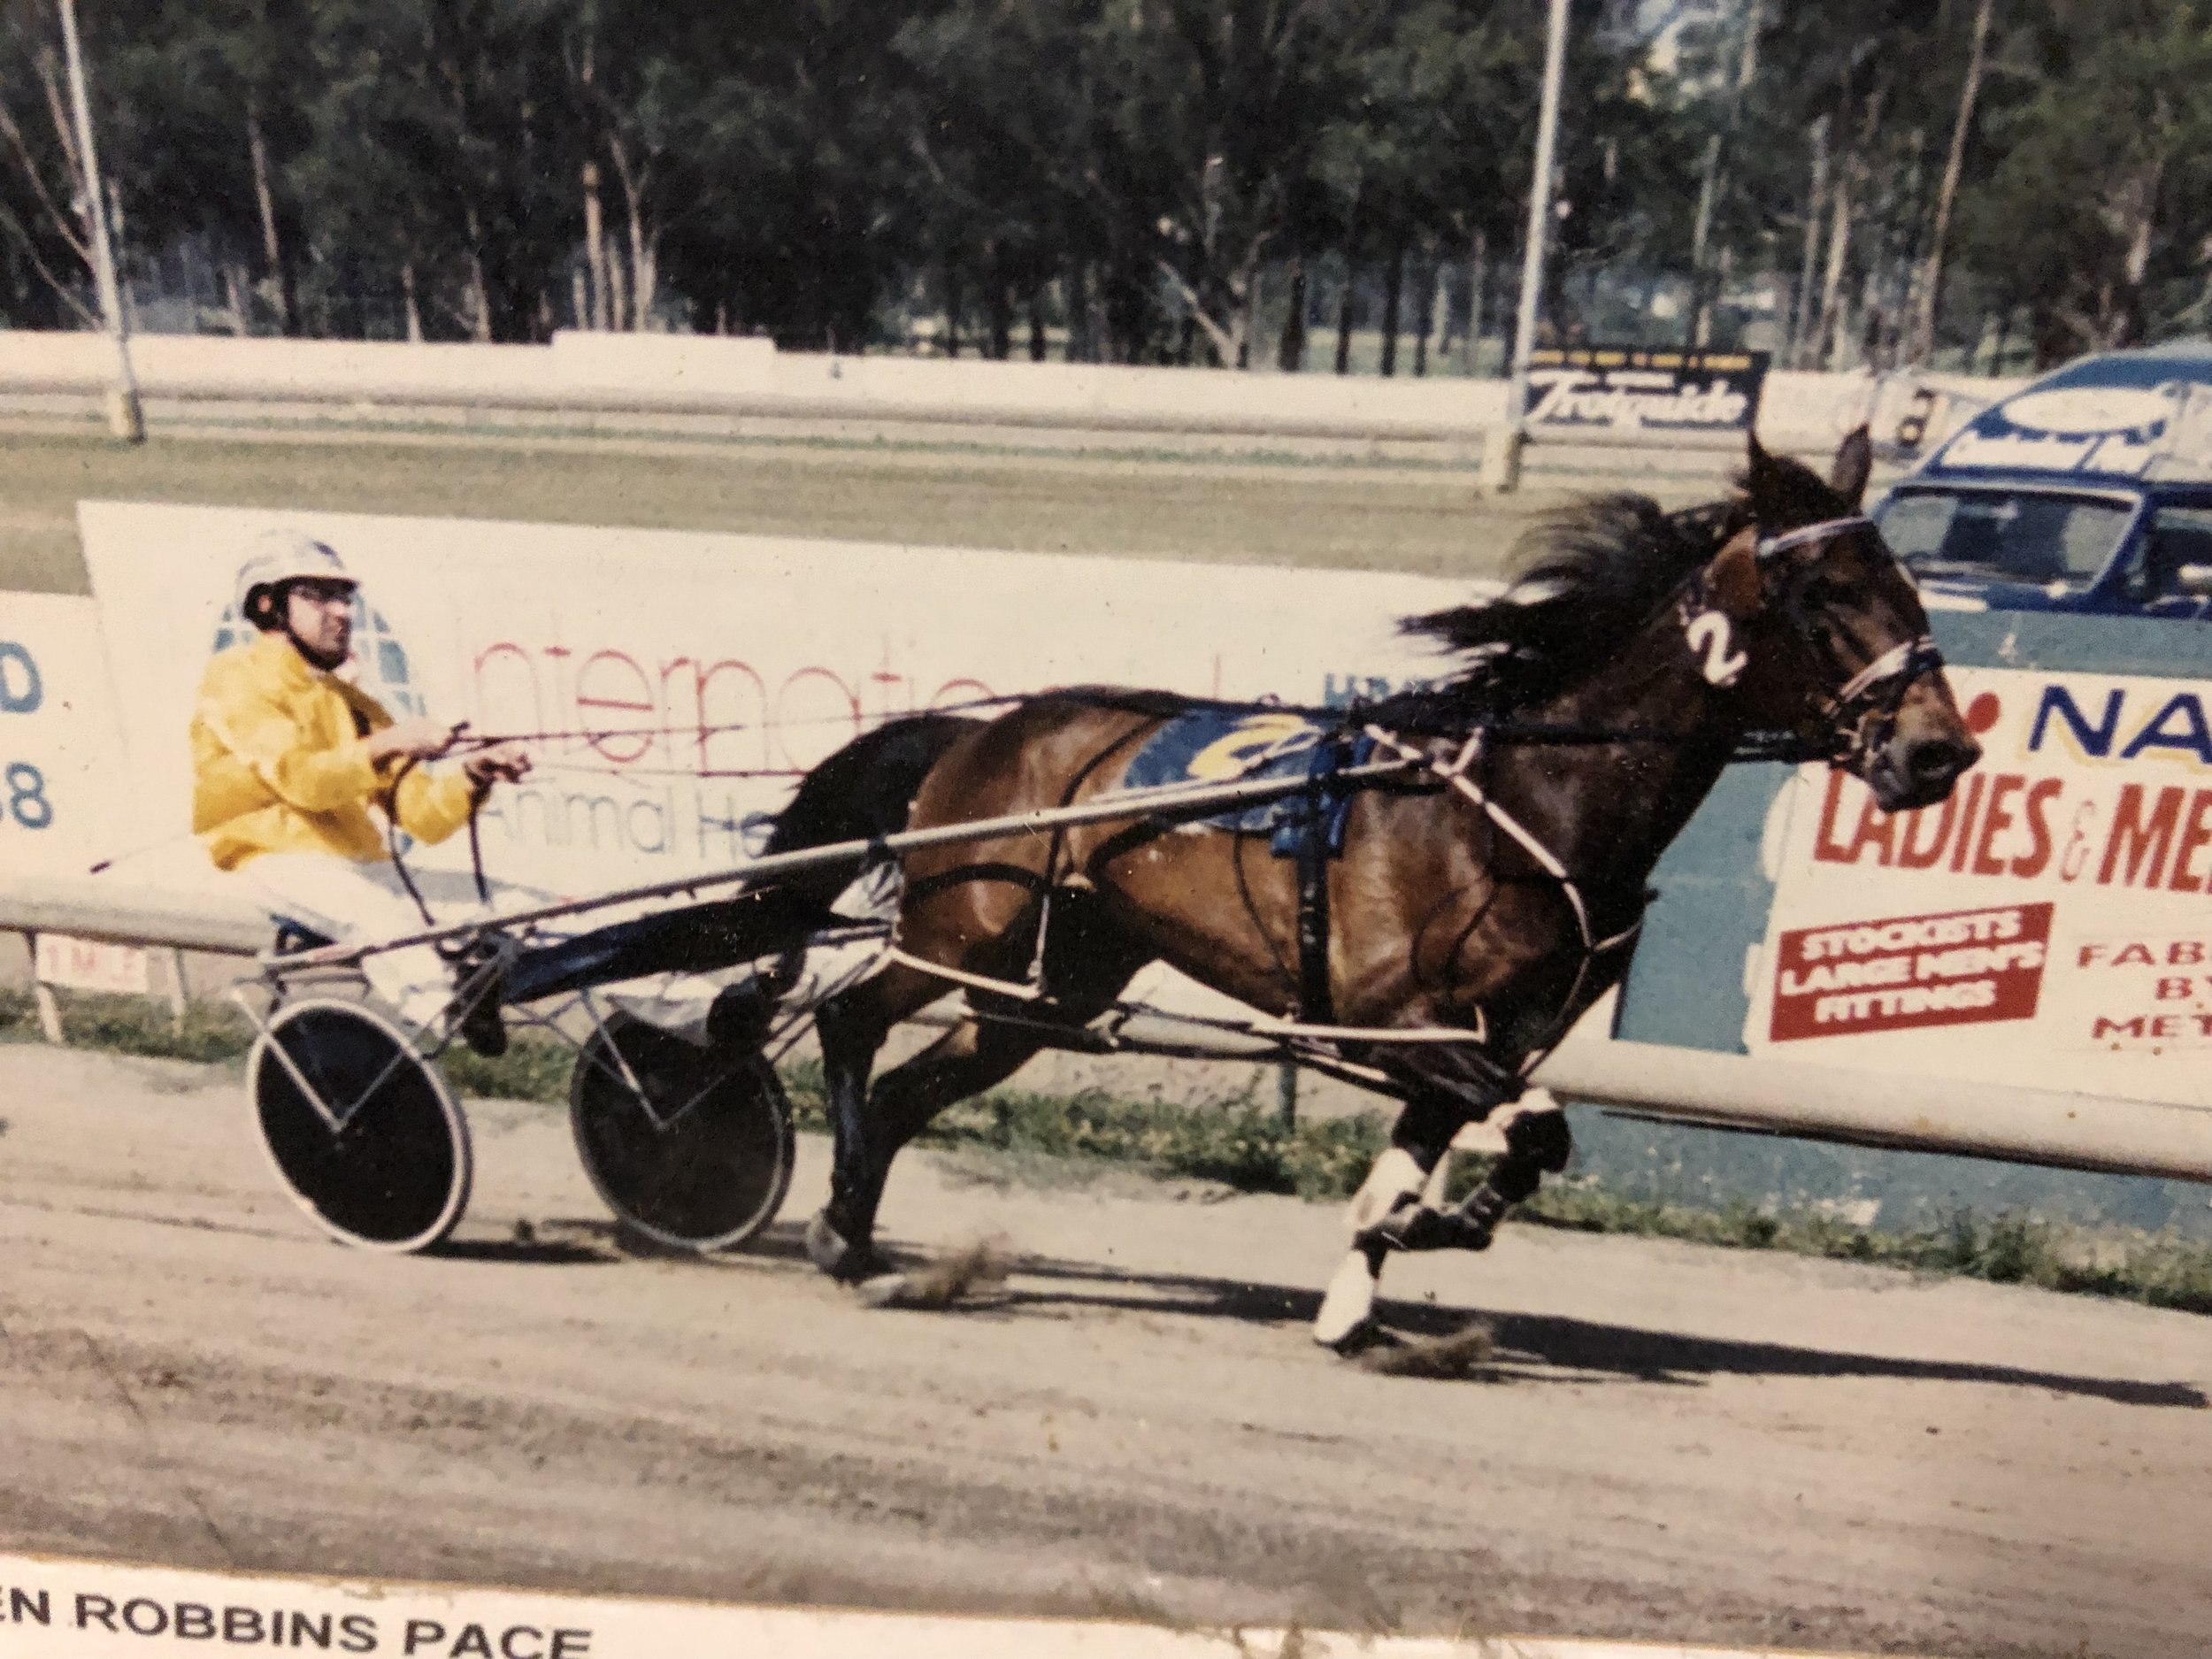 Jim Rando has always used freelance drivers. He drove this one himself, Bold Sun at Fairfield.